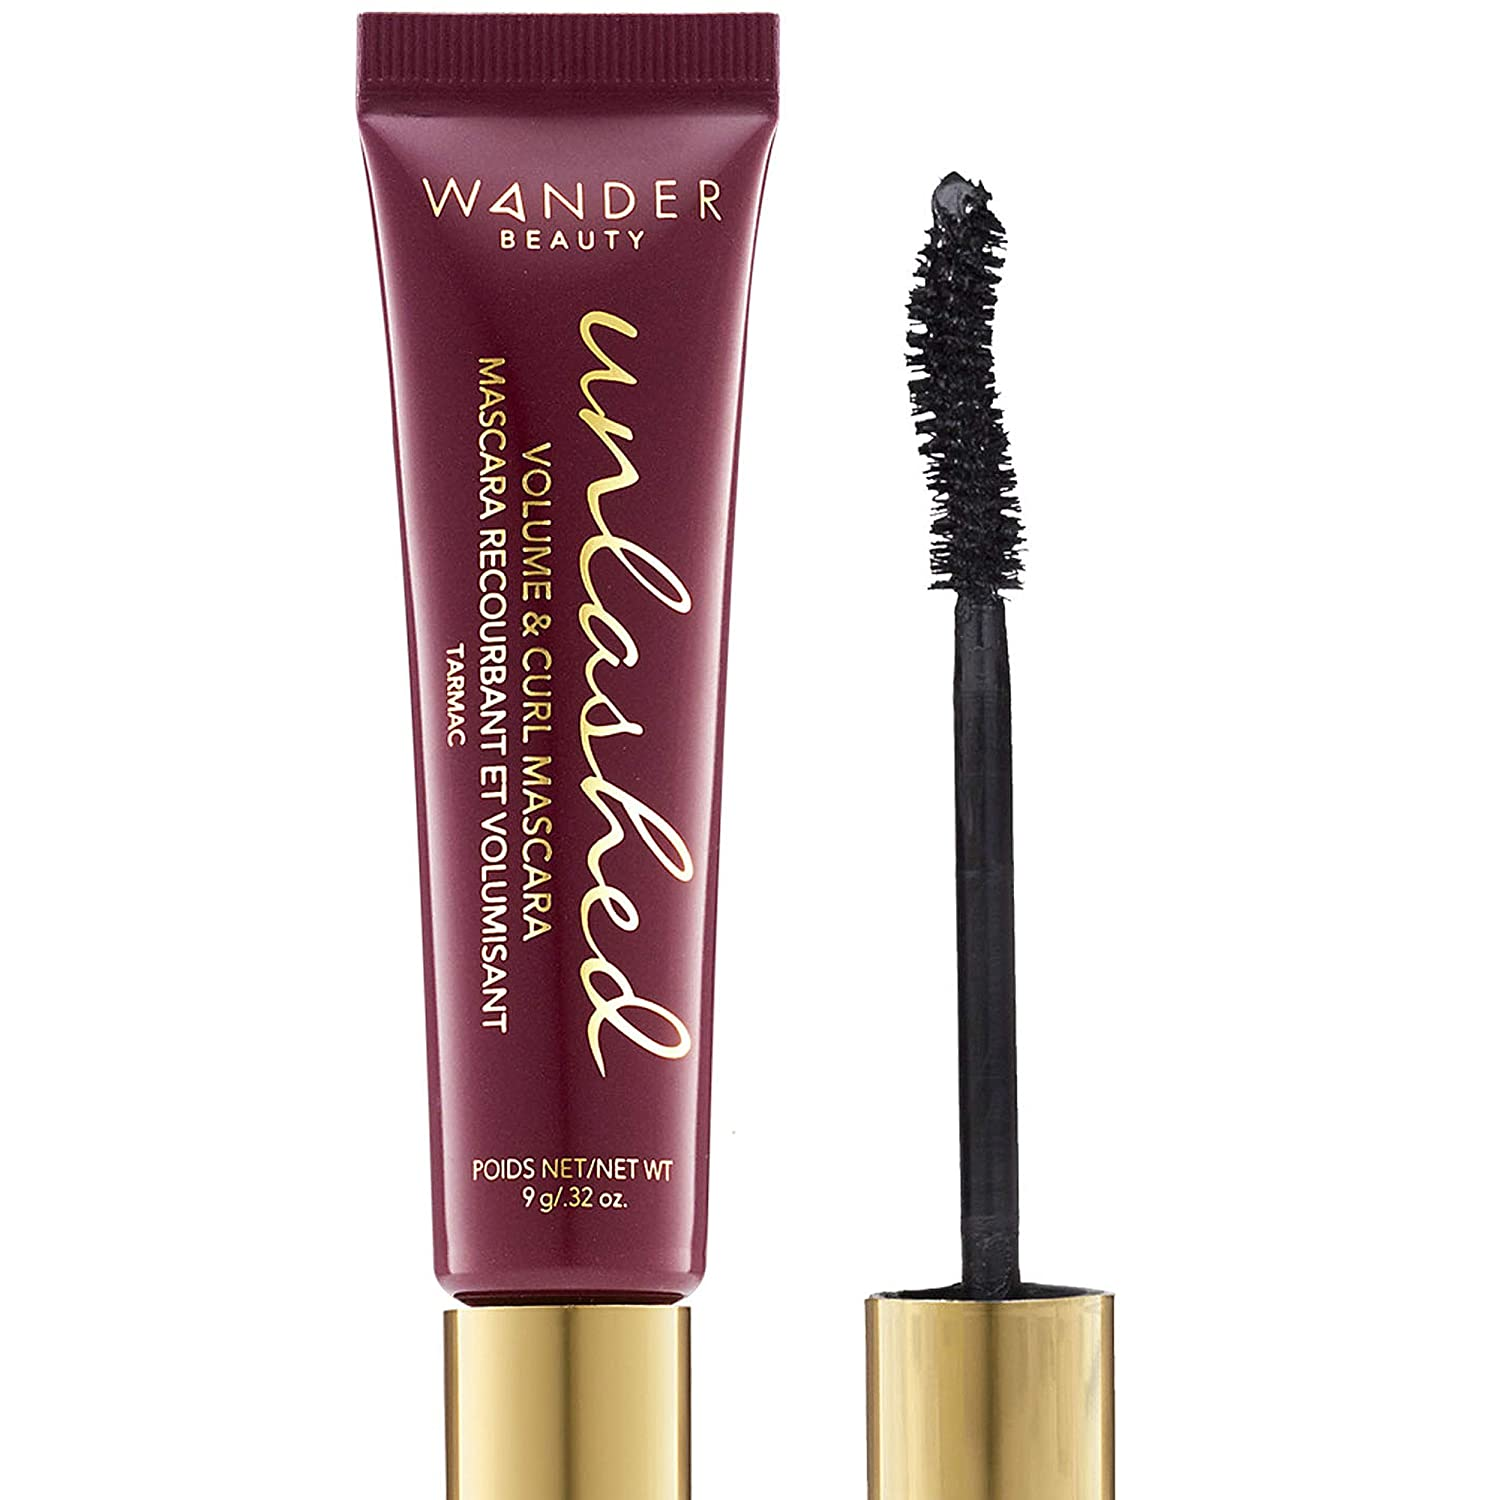 Wander Beauty Unlashed Volume & Curling Mascara